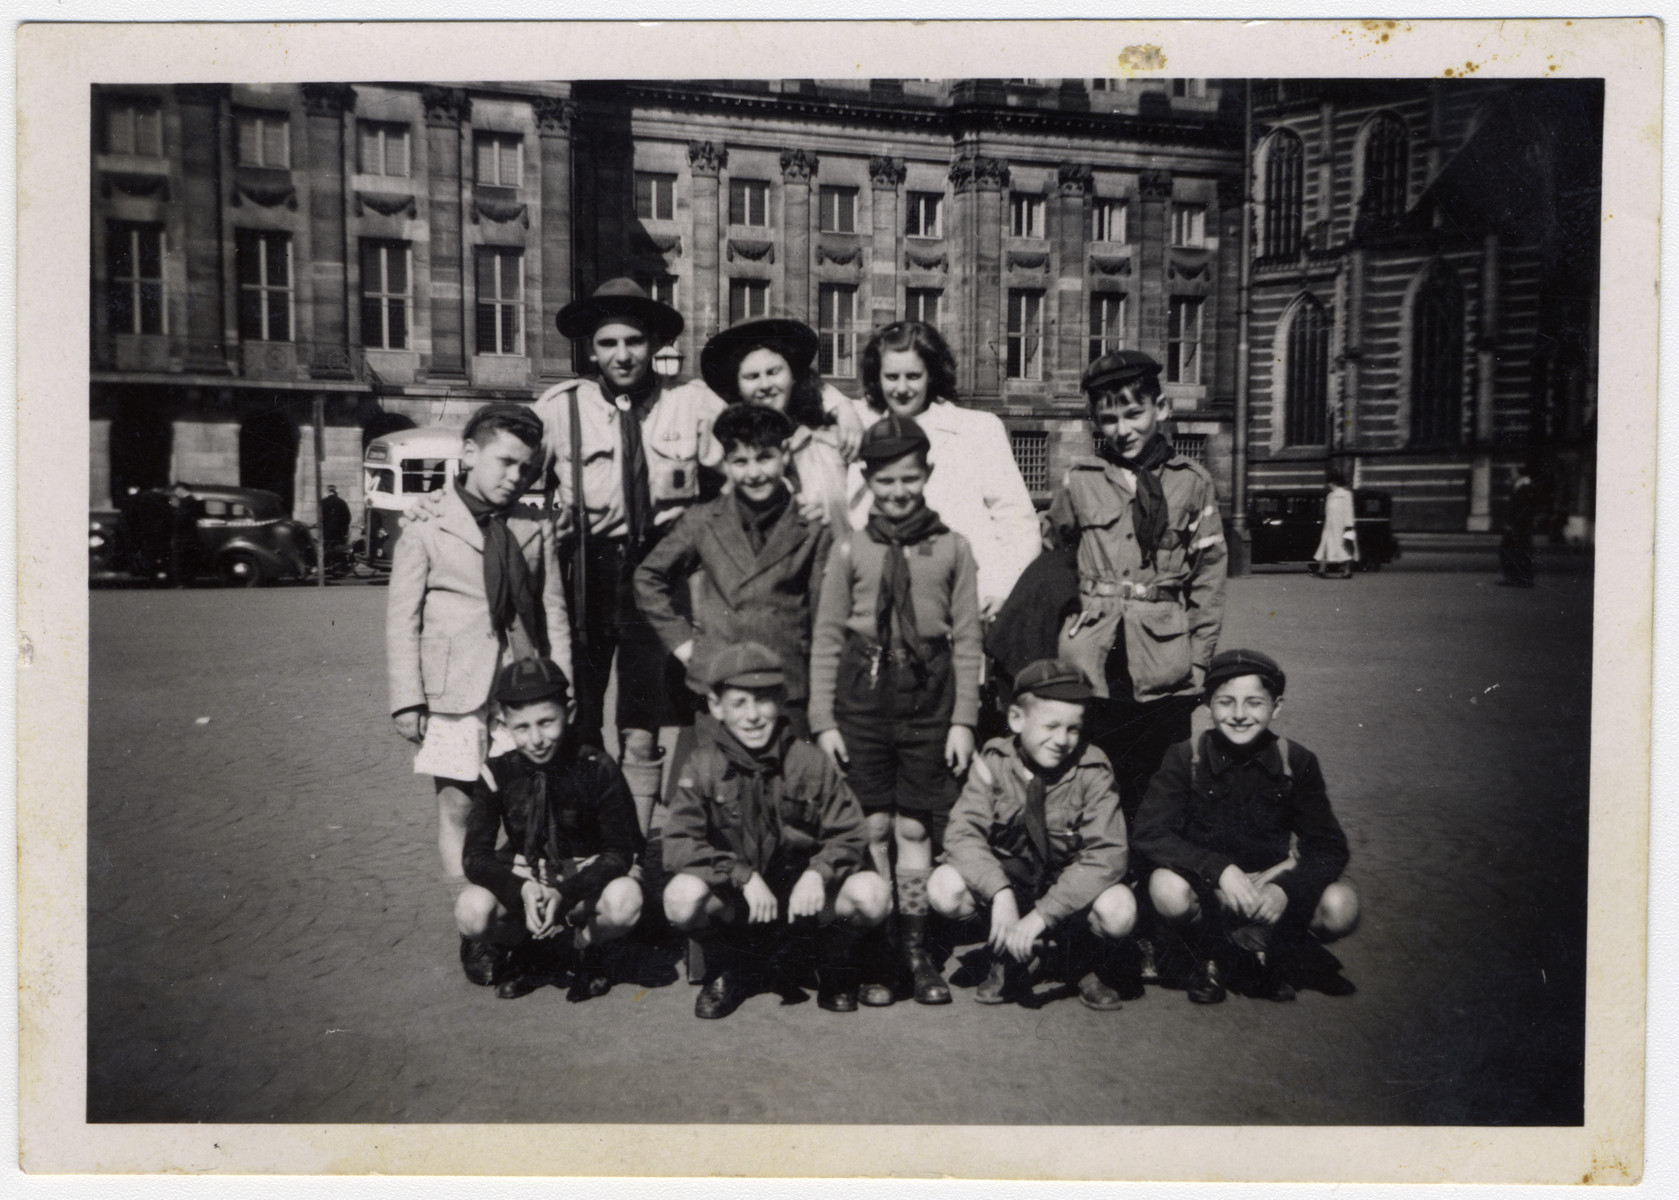 Group portrait of Dutch scouts taken after the war.